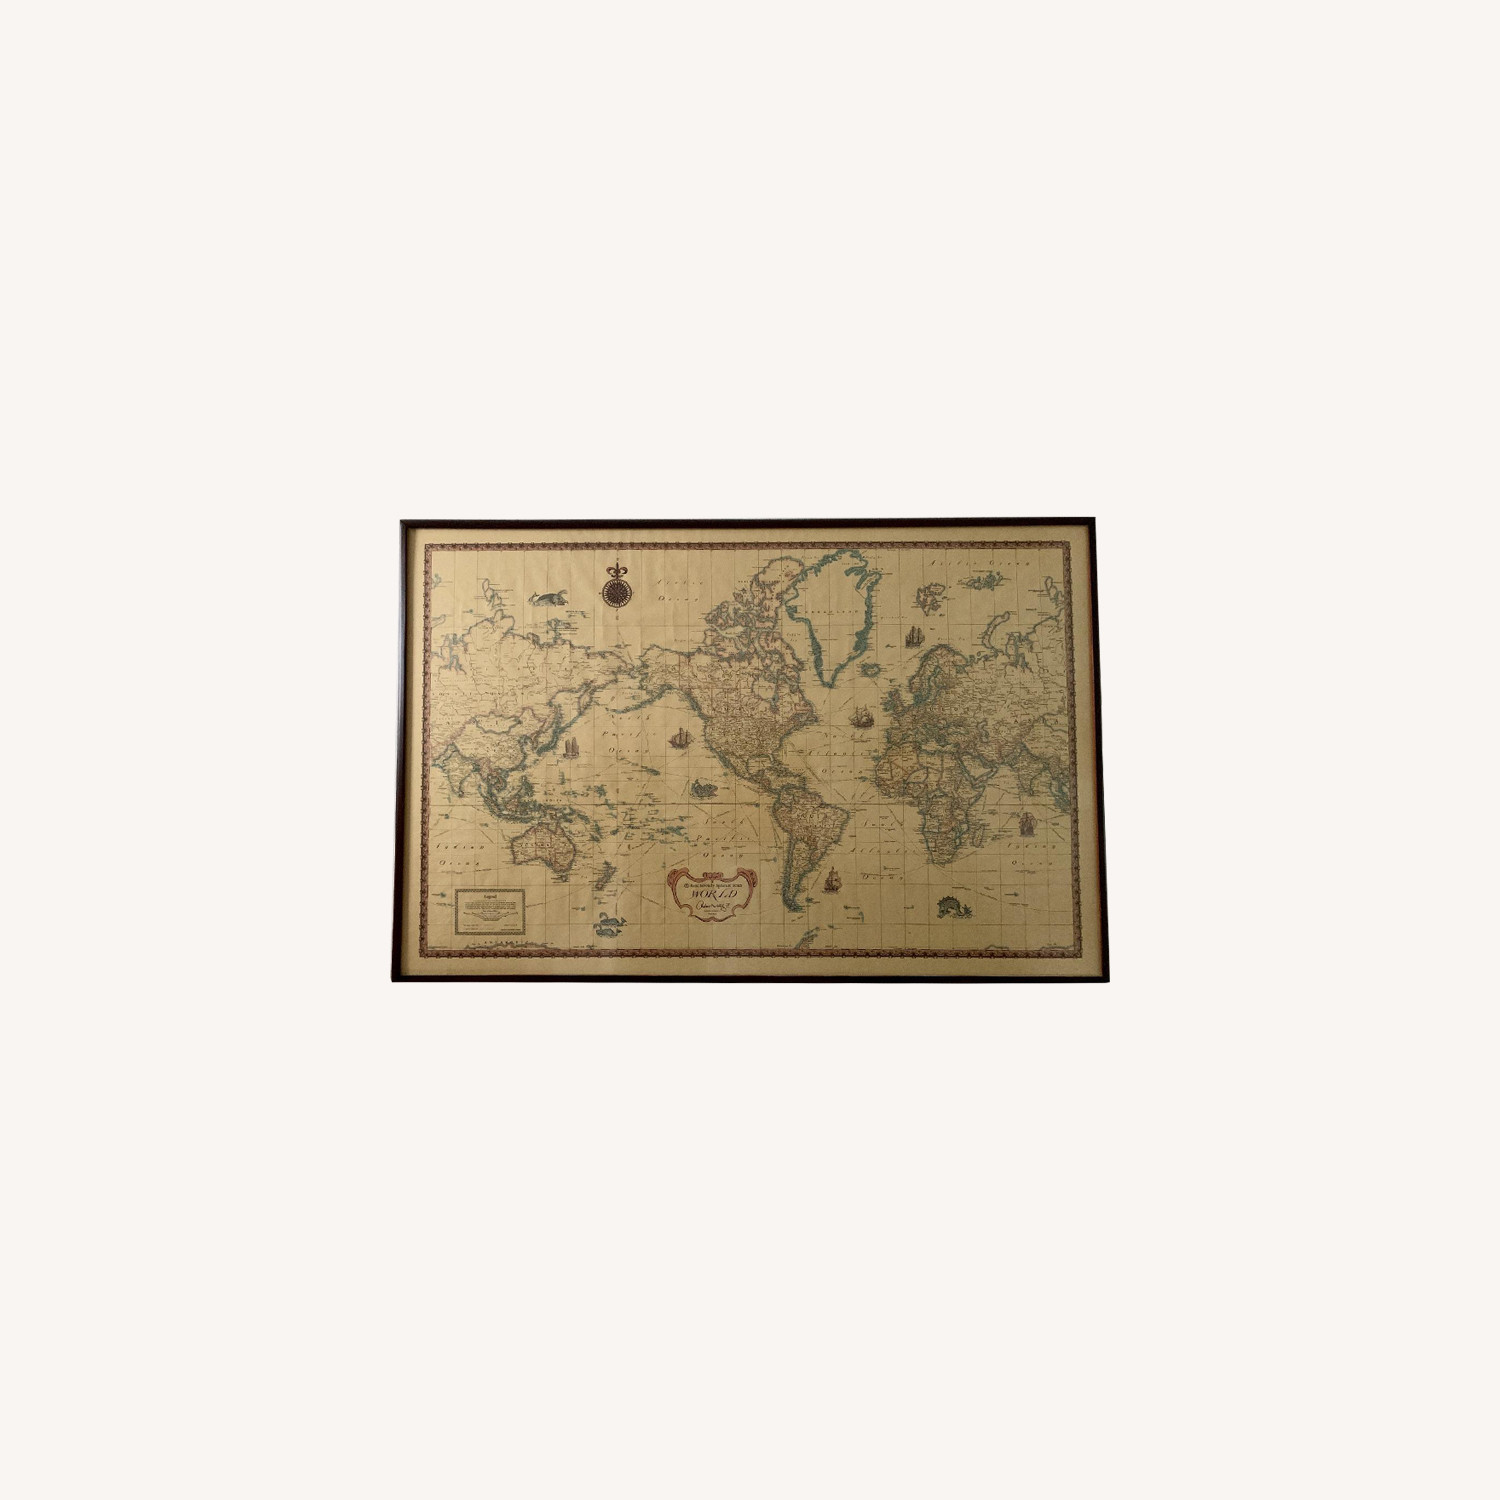 Framed Print of Antique World Map